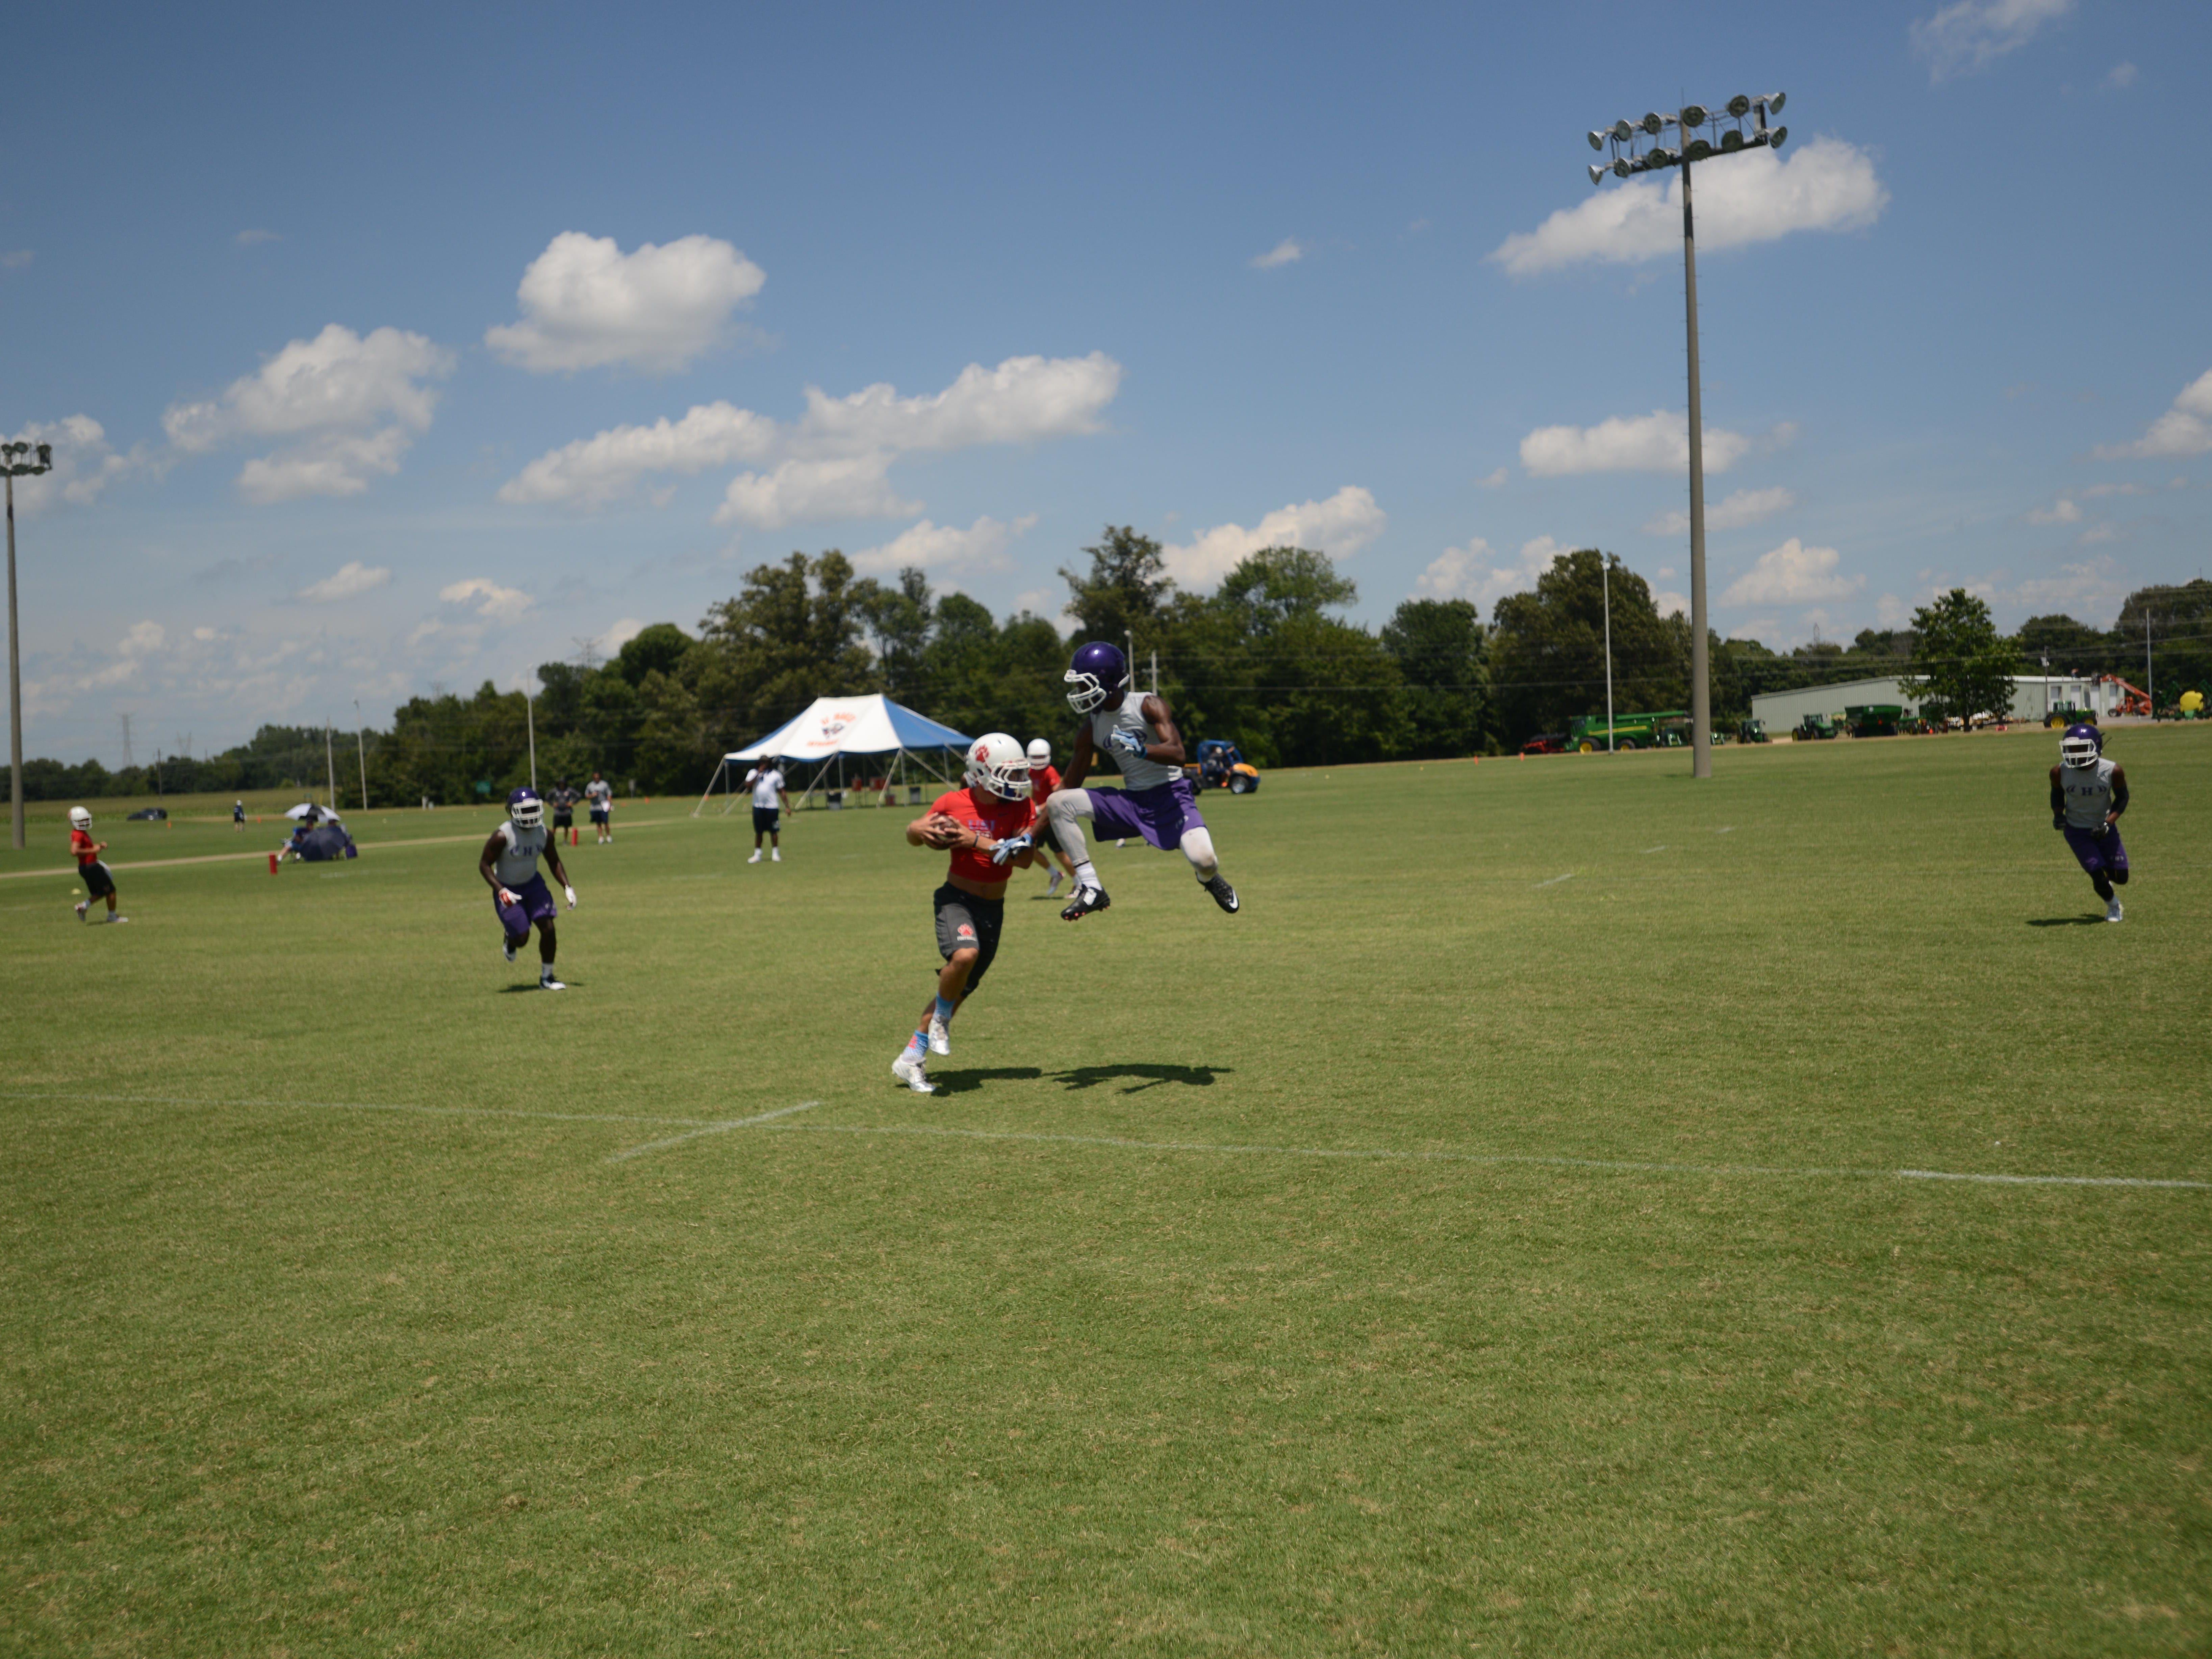 University School School of Jackson and Haywood met in the quarterfinals of the 7-on-7 tournament in Martin on Saturday.